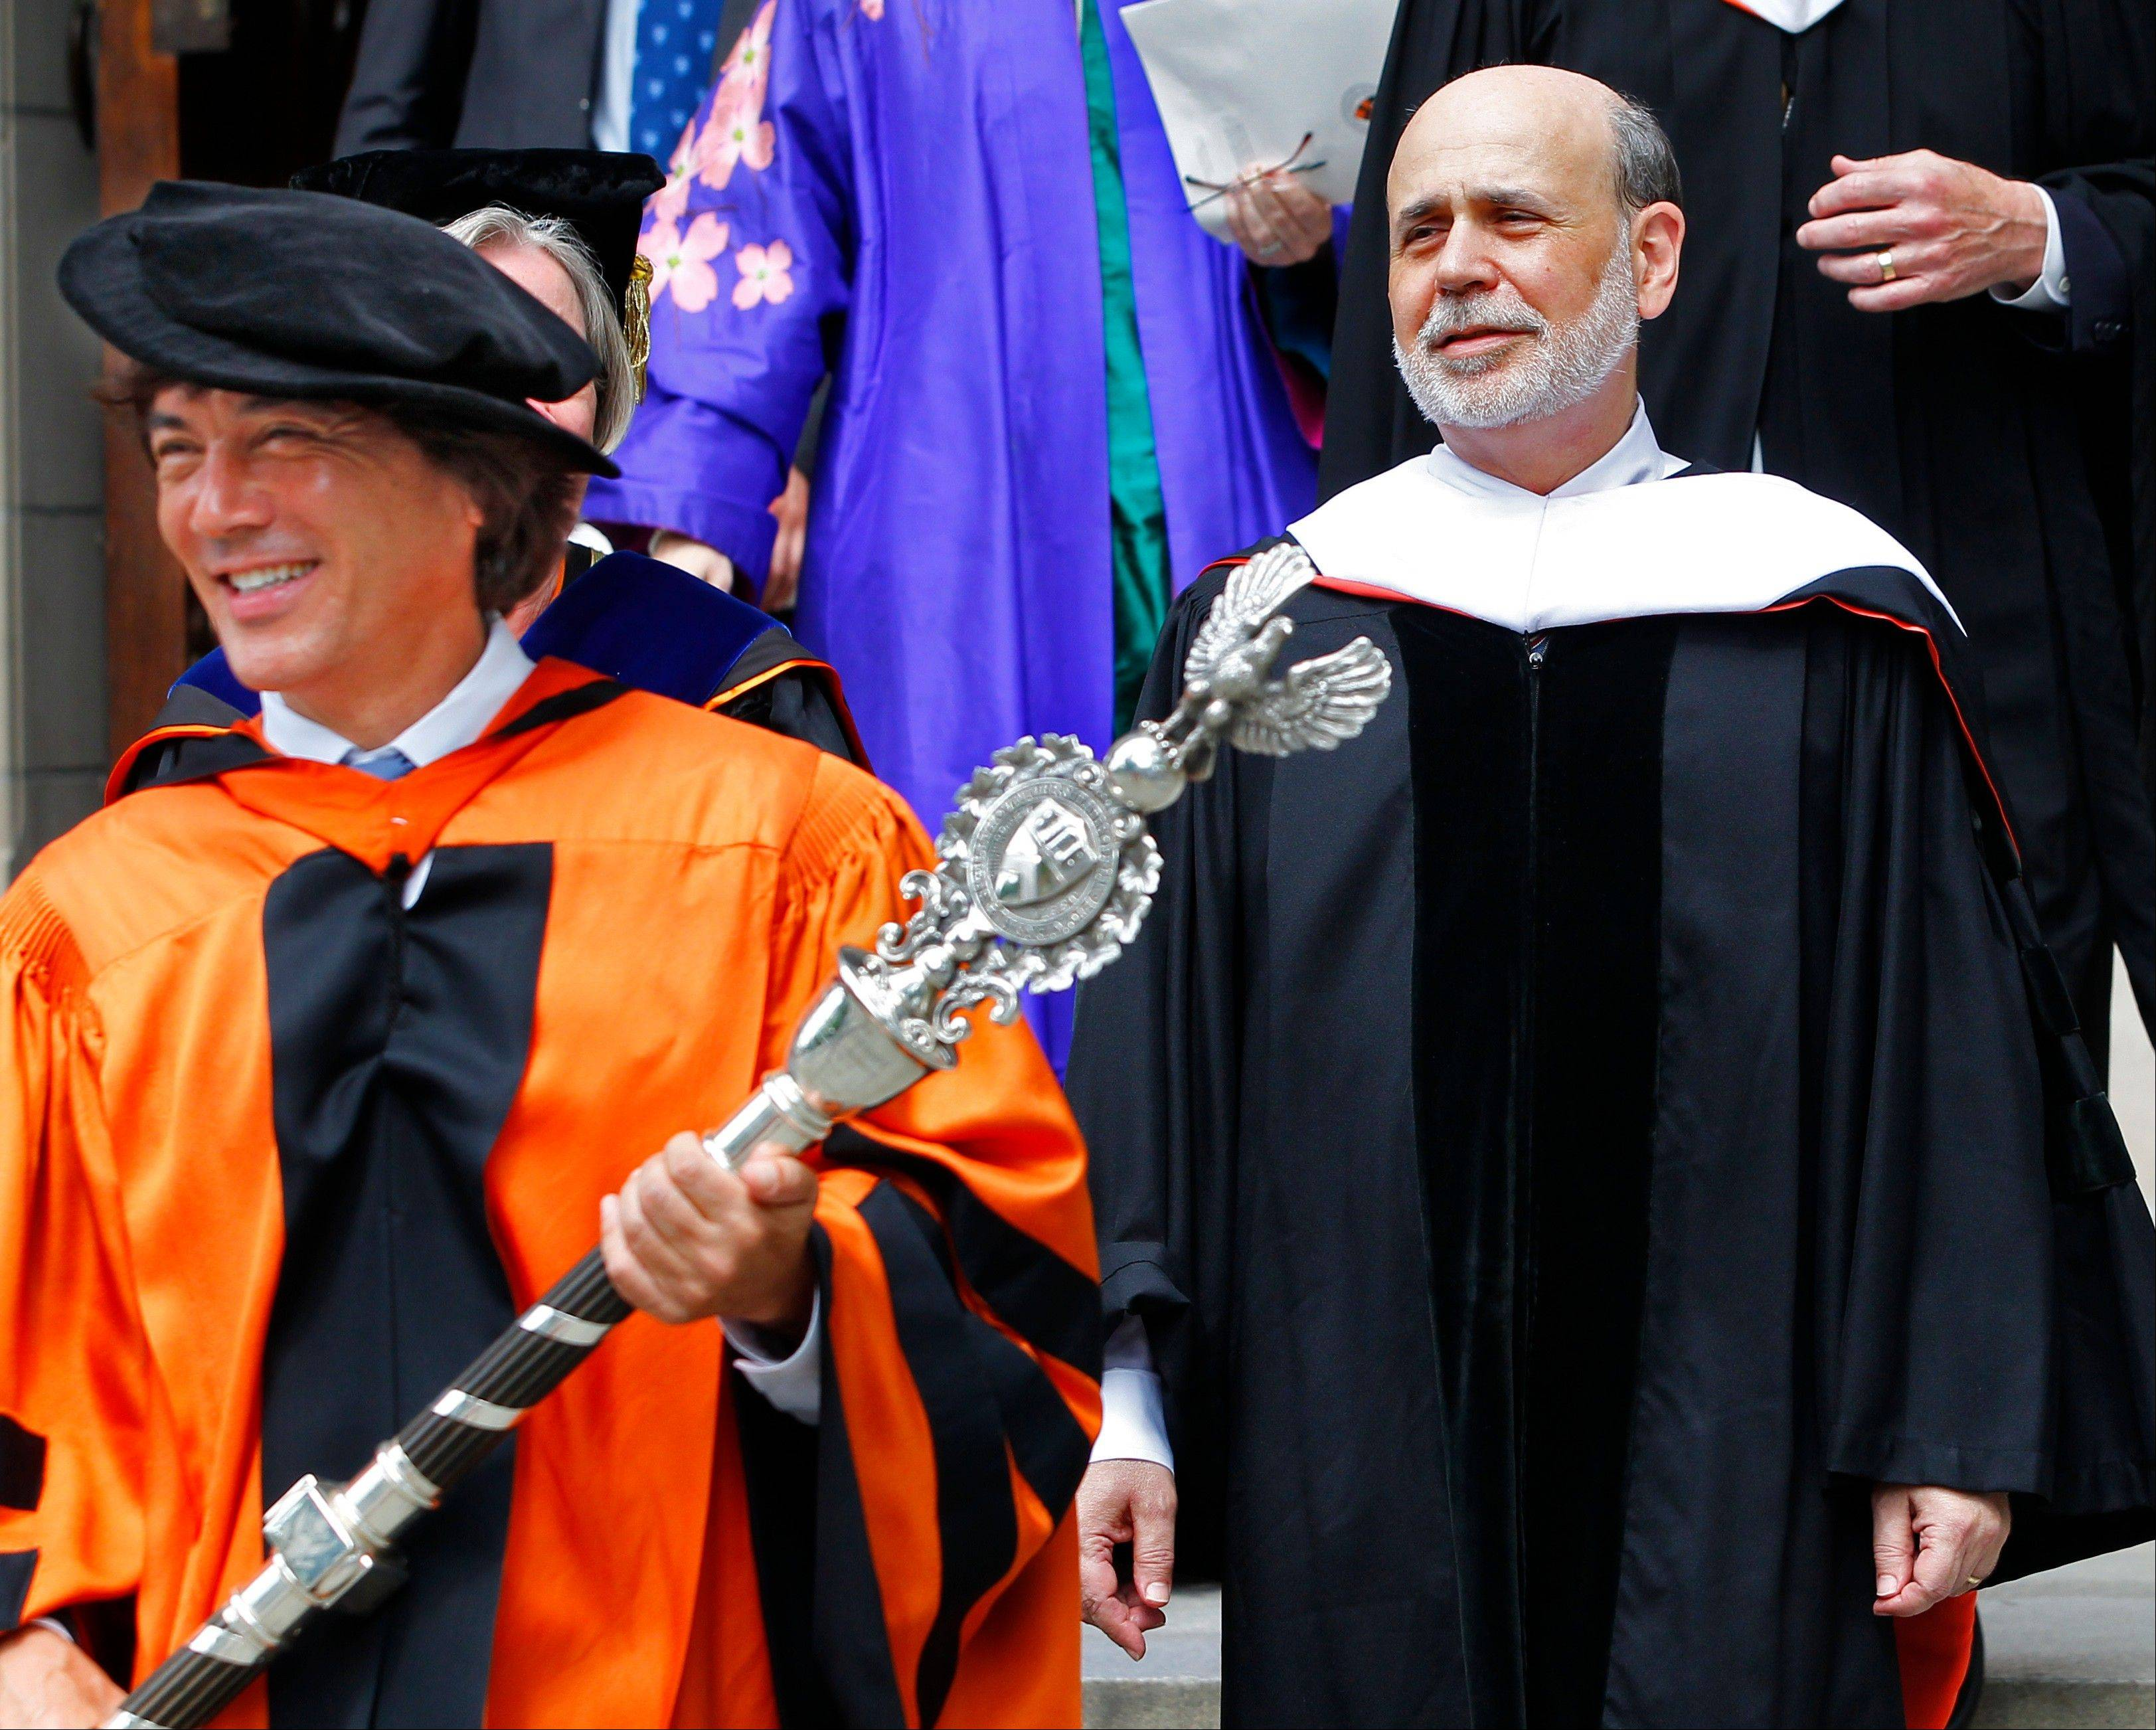 Princeton University's Dr. Jeff Nunokawa, Professor of English, holds the the school's ceremonial mace as Ben S. Bernanke, Chairman of the Federal Reserve, leads the processional out of Princeton University Chapel after giving the Baccalaureate address Sunday.